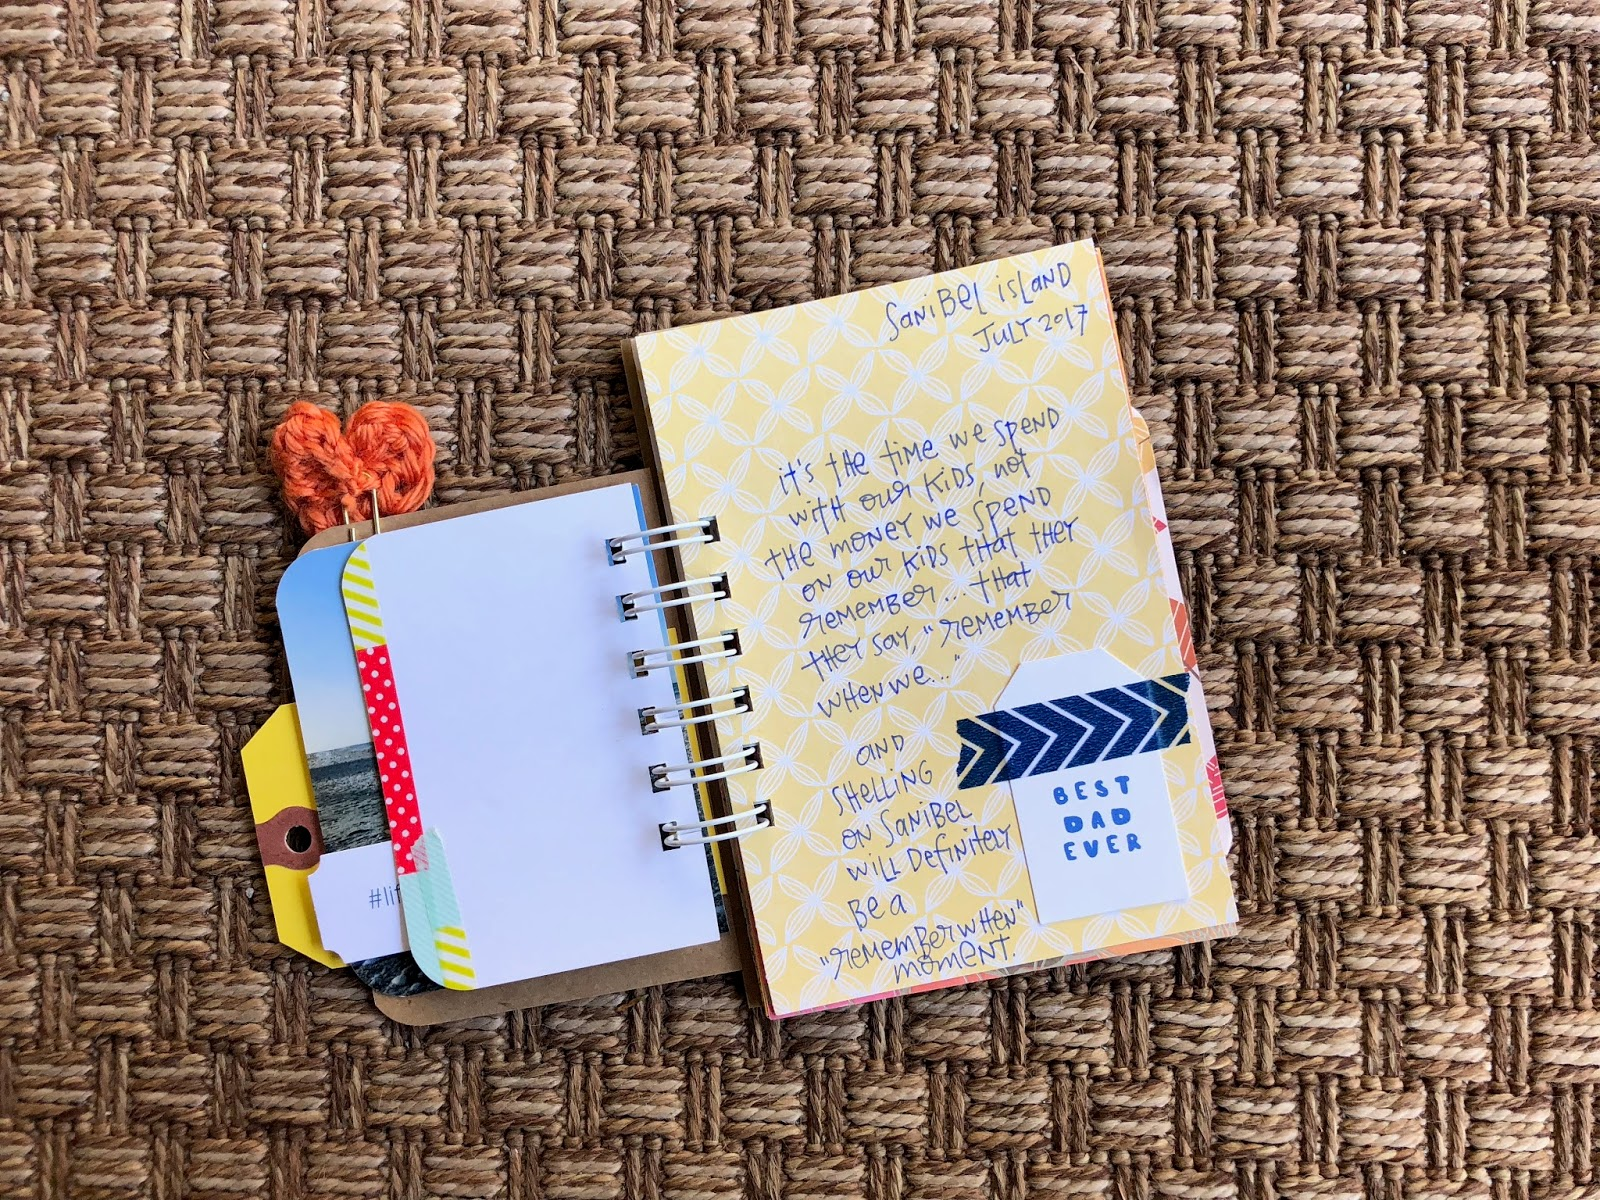 #the100dayproject #100dayproject #the 100 day project #scrapbooking #mini book #mini album #memorykeeping